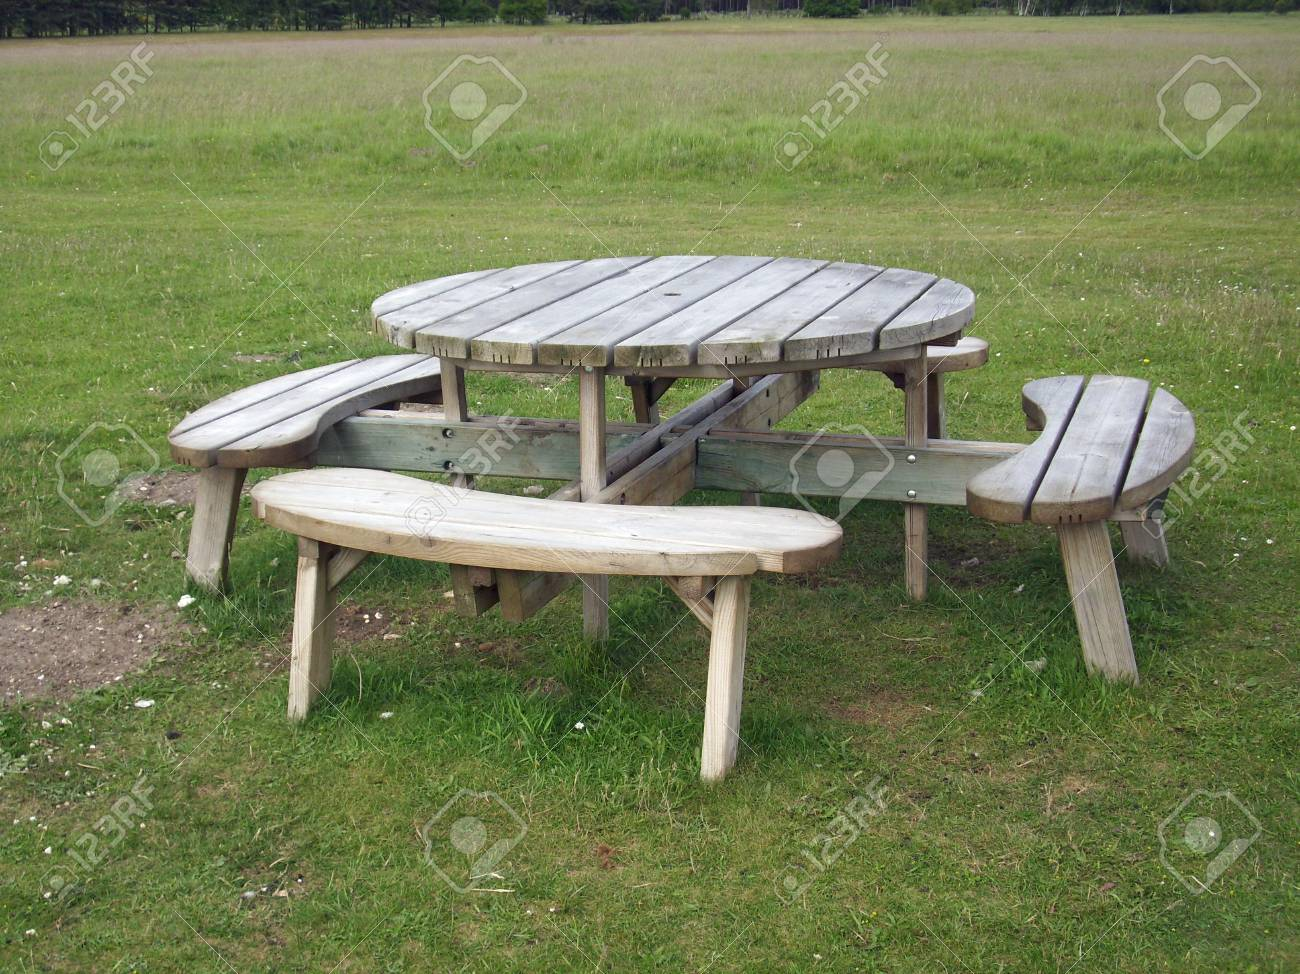 Round Wooden Picnic Table Stock Photo Picture And Royalty Free Image Image 49671032